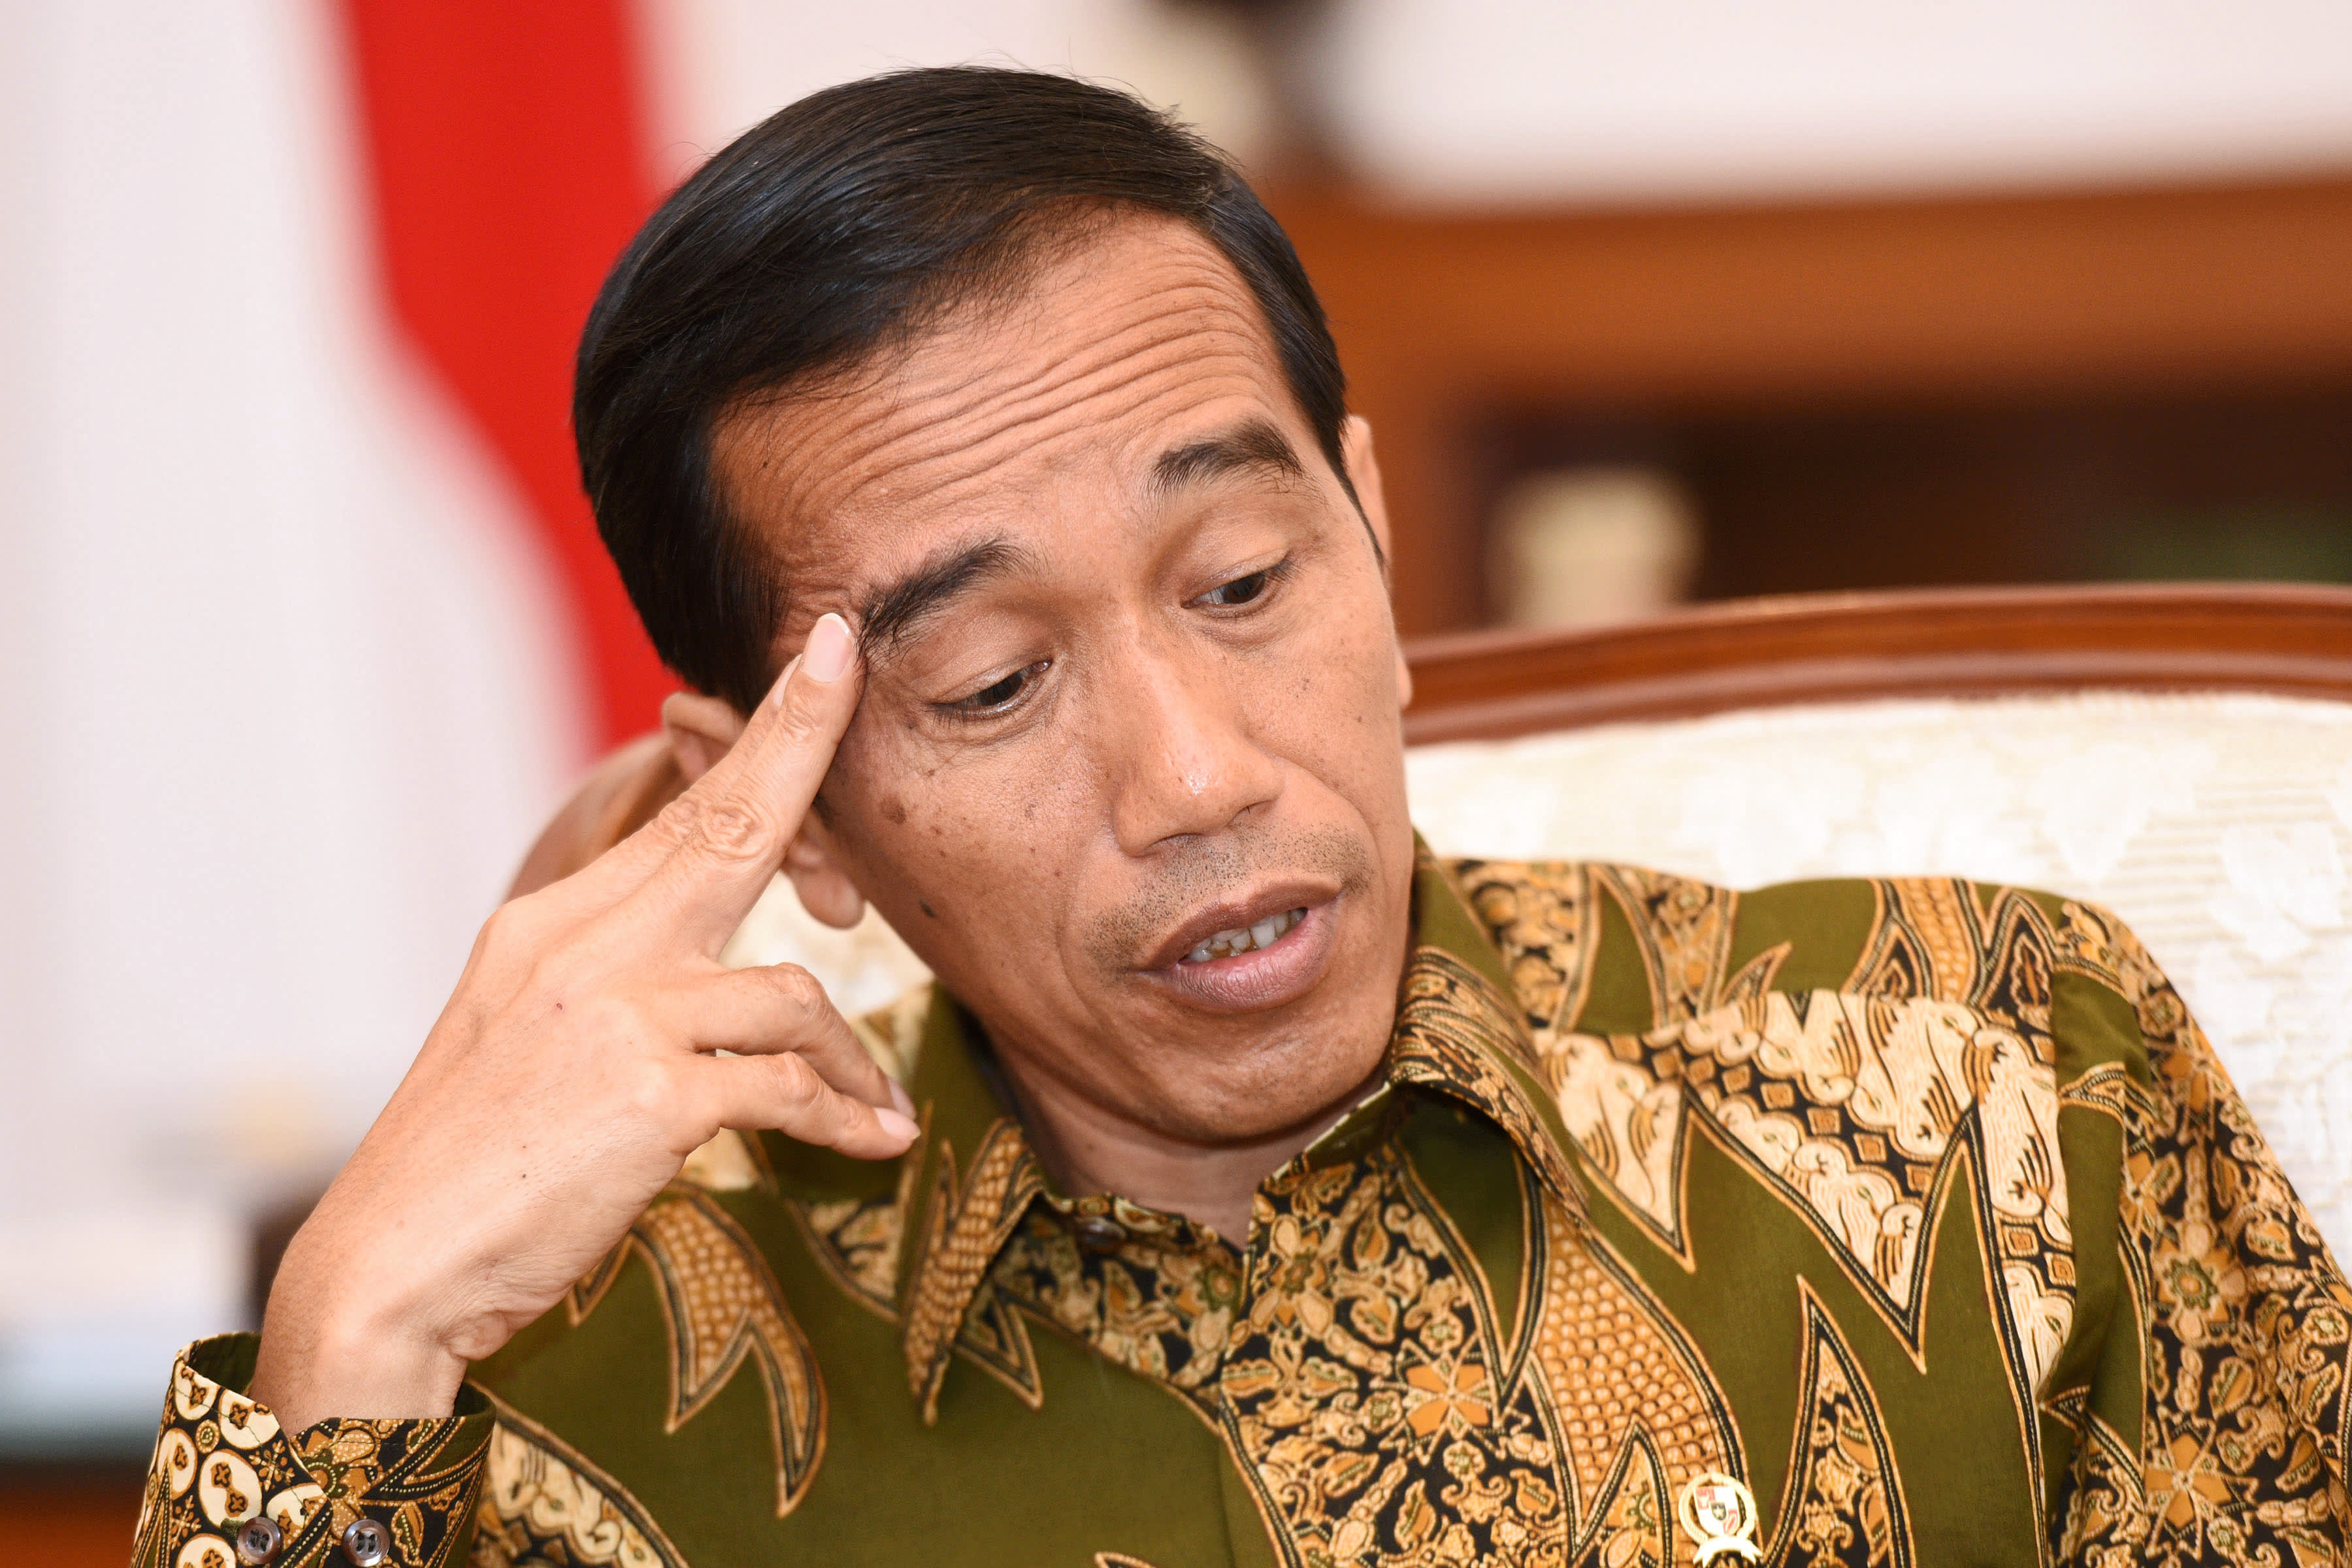 Indonesia president proposes to move capital to Borneo